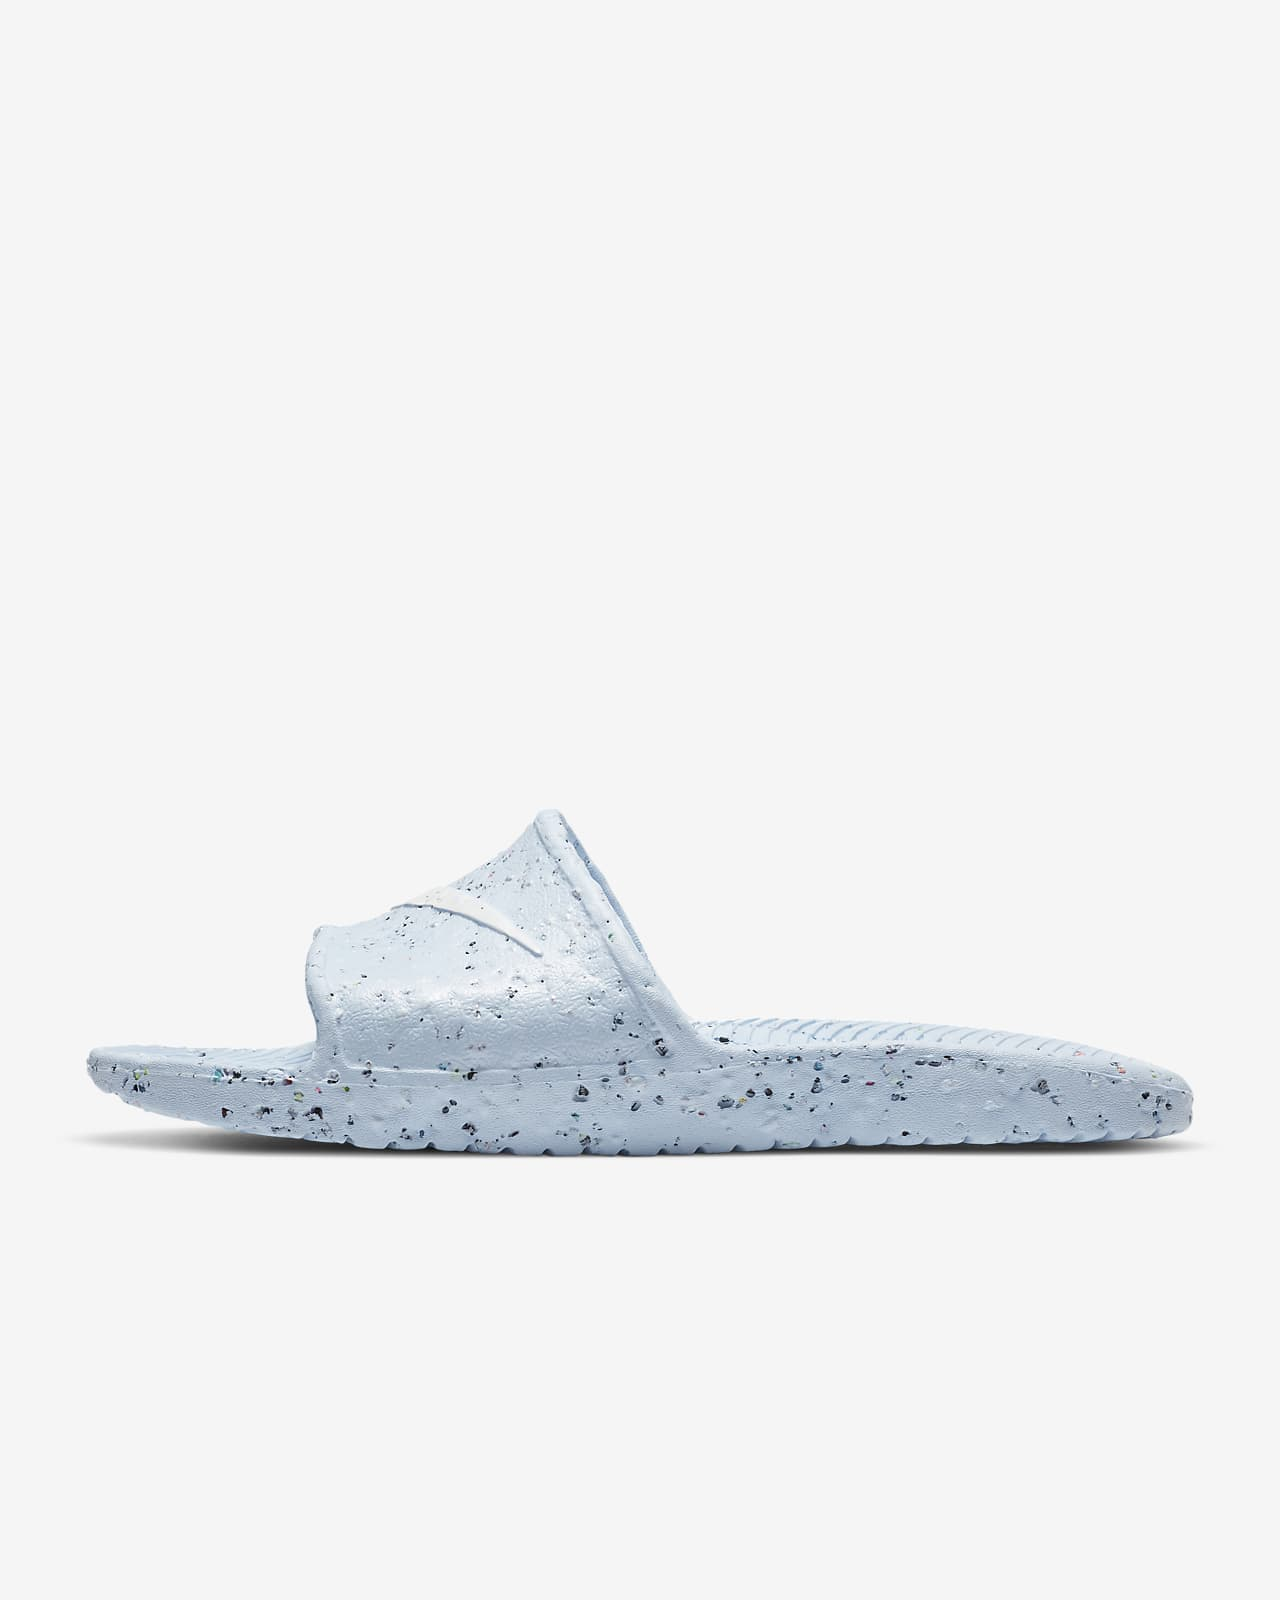 Nike Kawa SE Men's Shower Slide